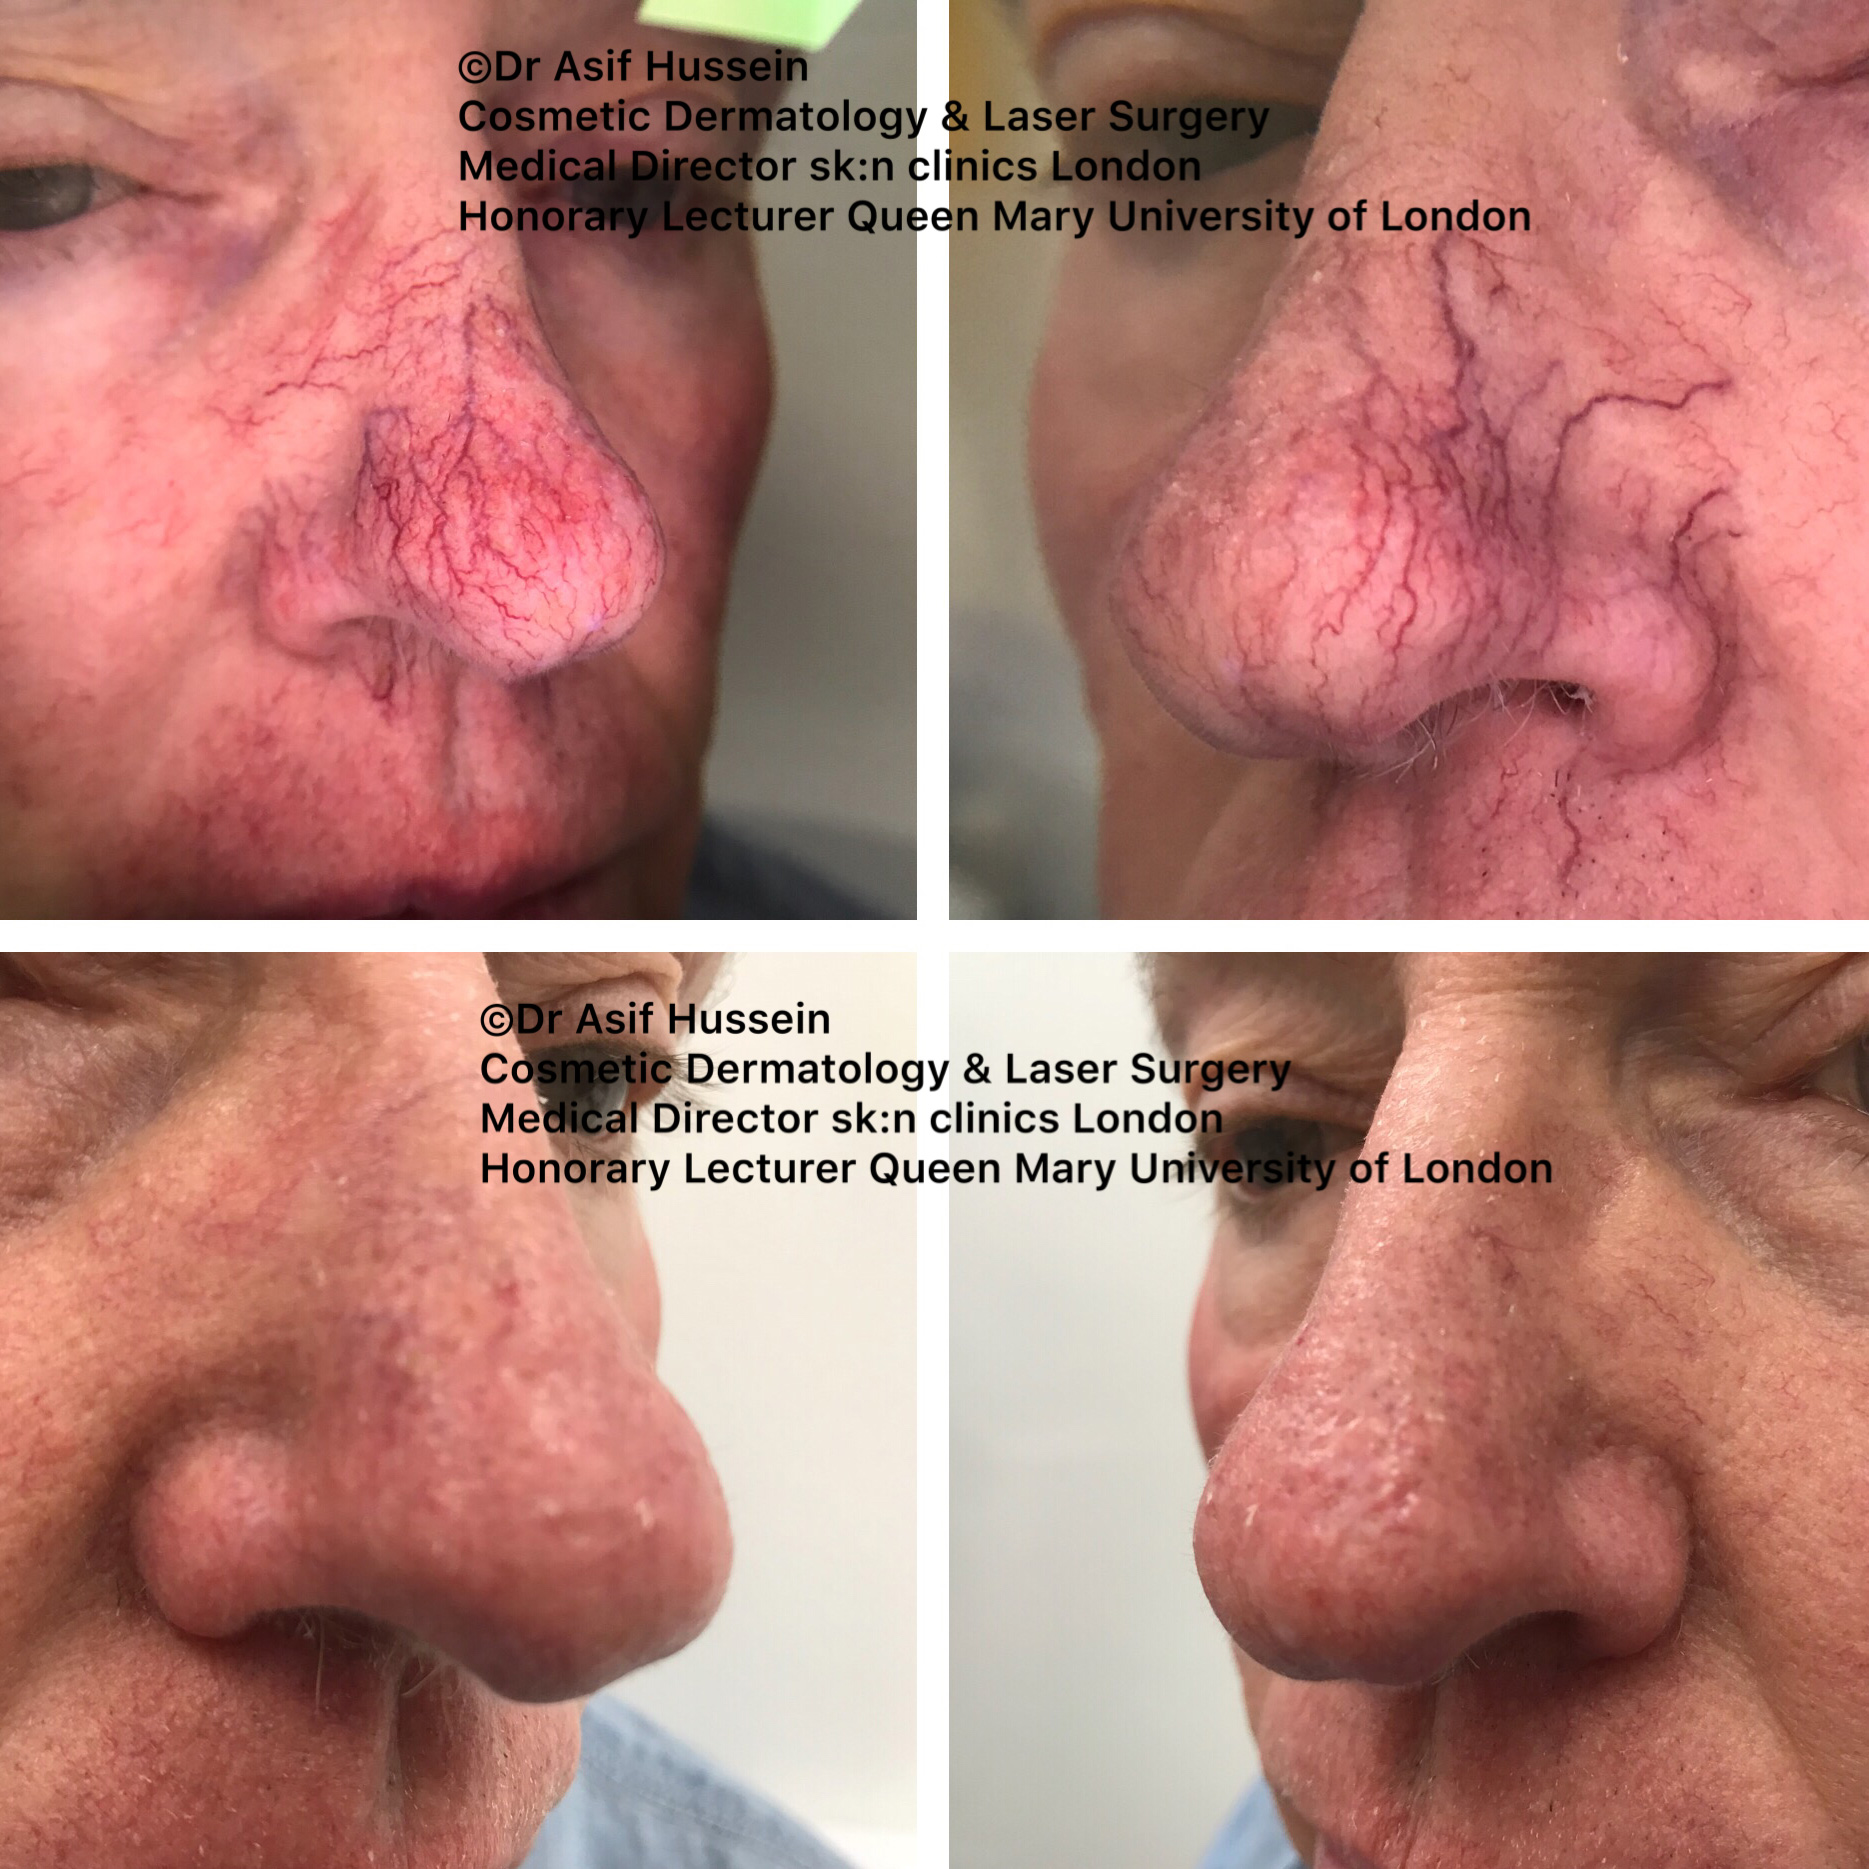 Facial Vein Spider Naevi Removal London Dr H Consult